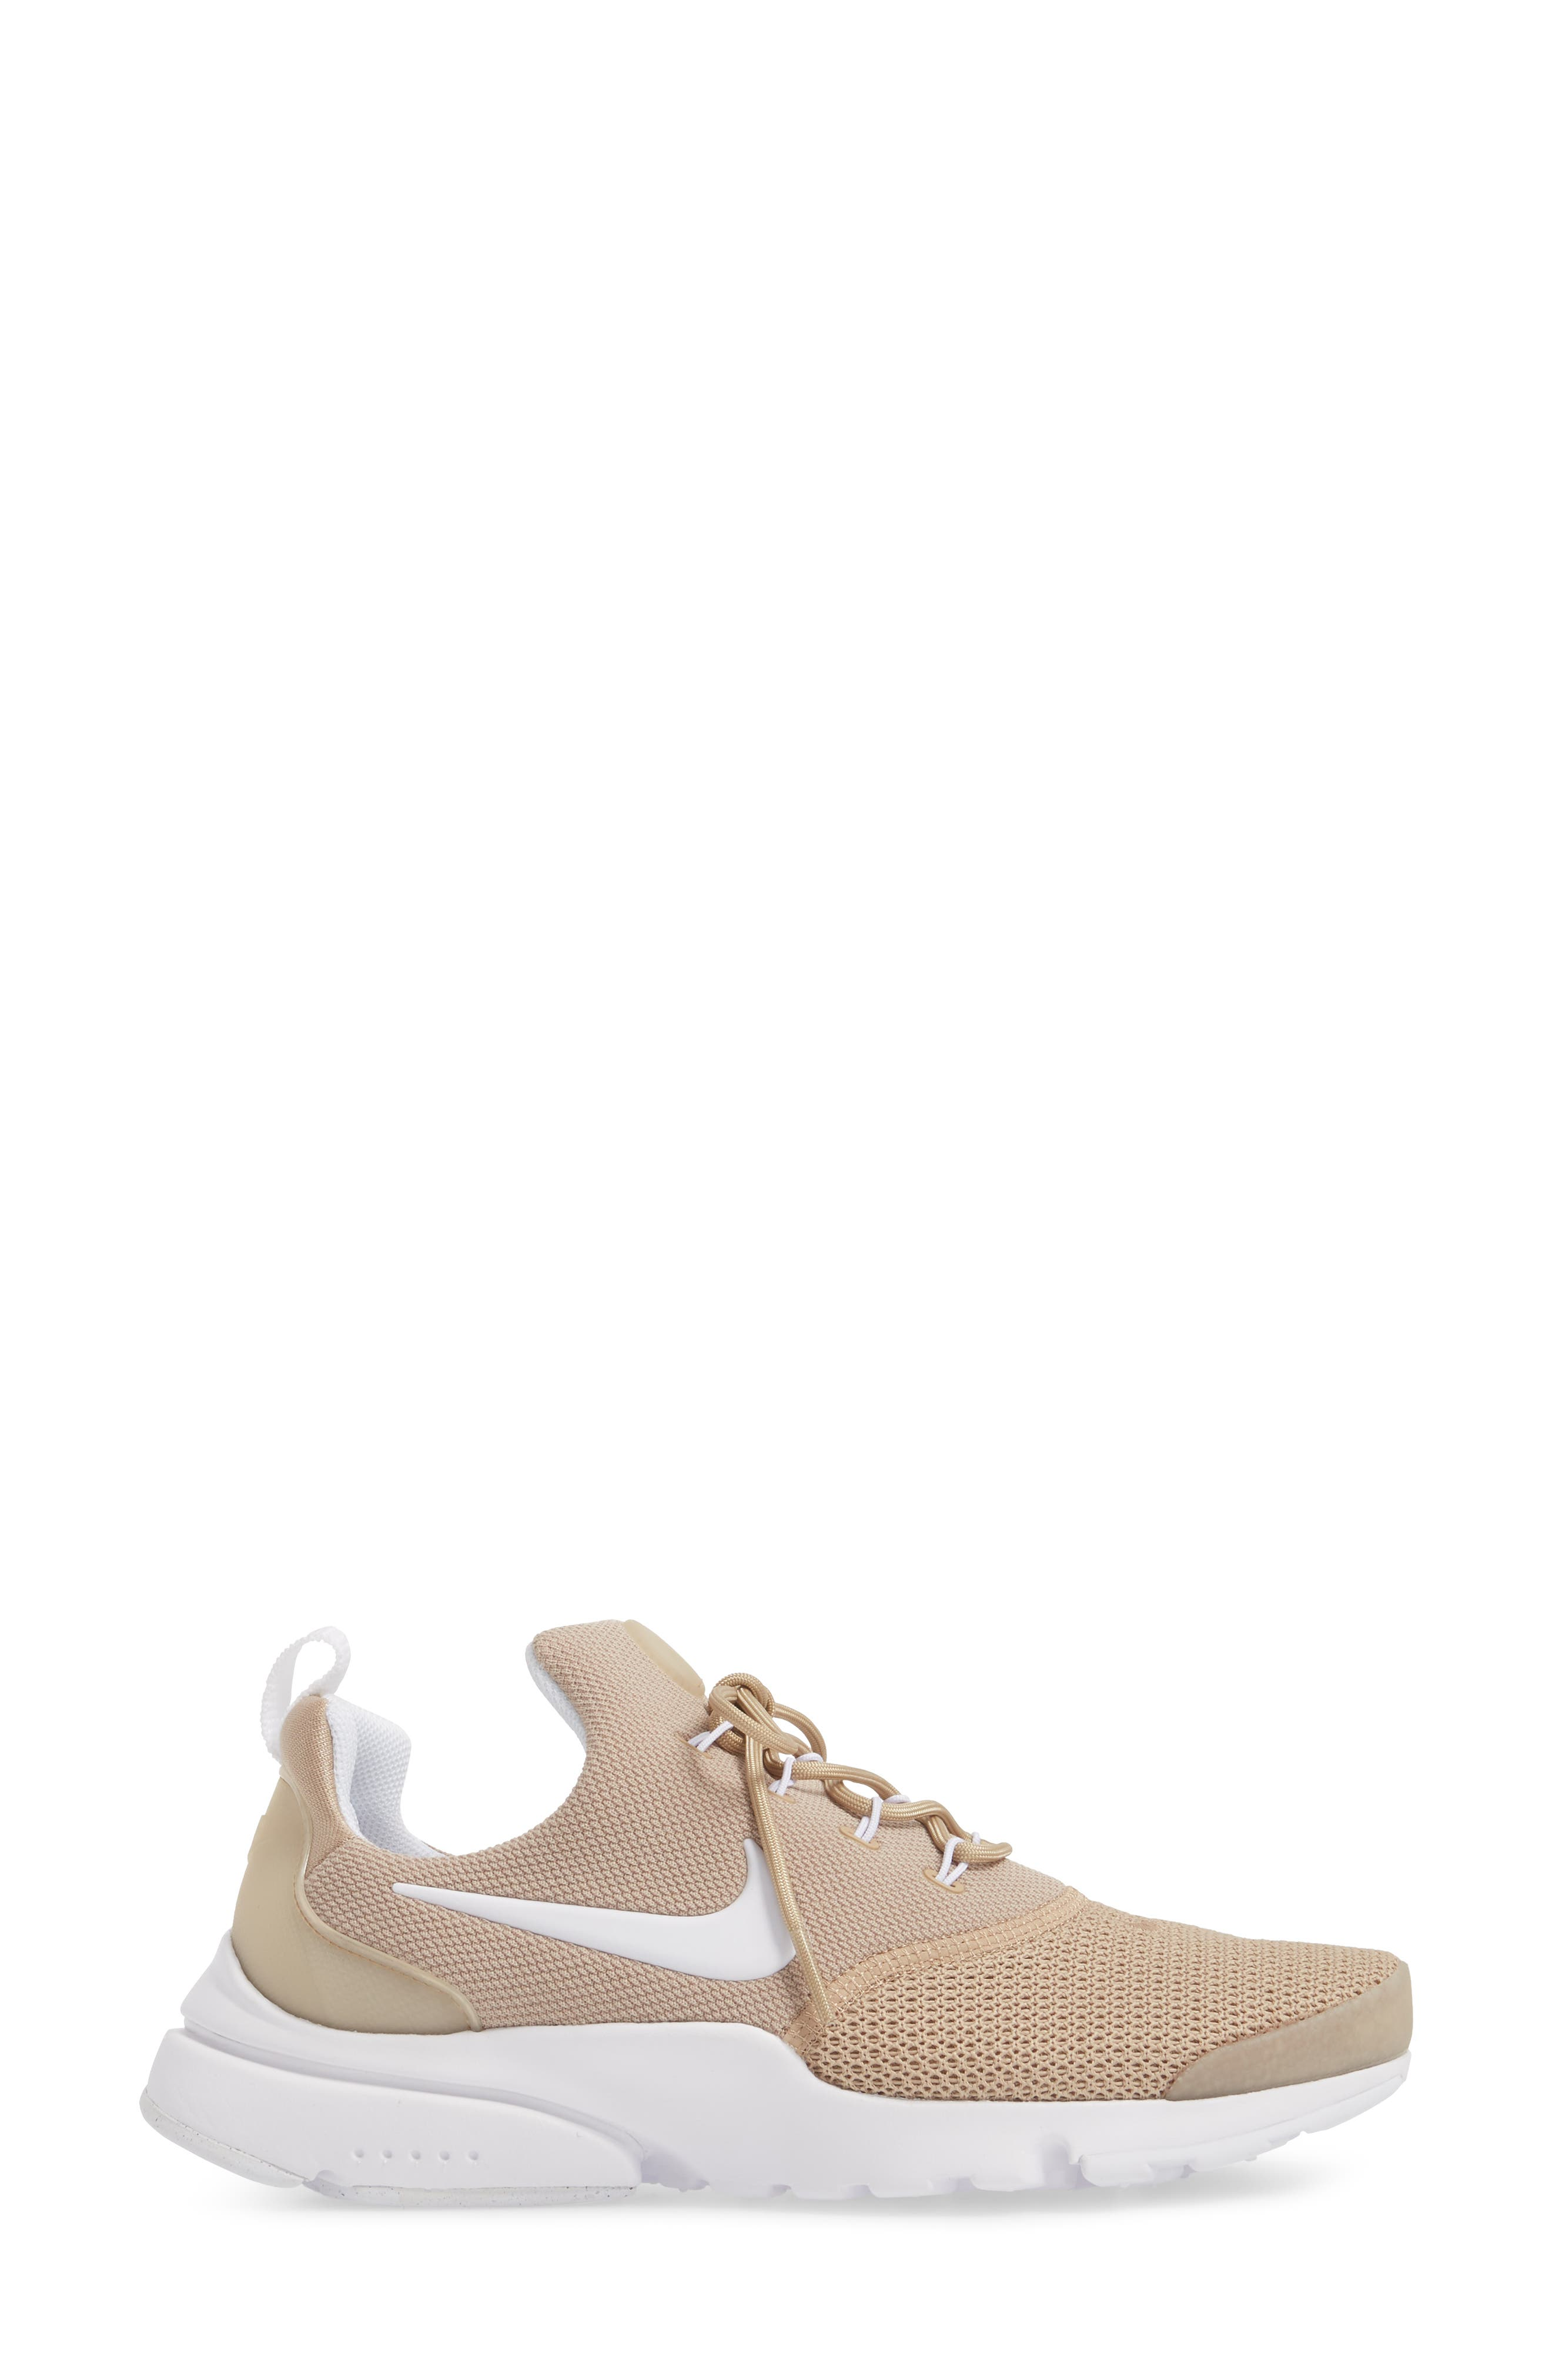 Presto Fly Sneaker,                             Alternate thumbnail 5, color,                             Sand/ White